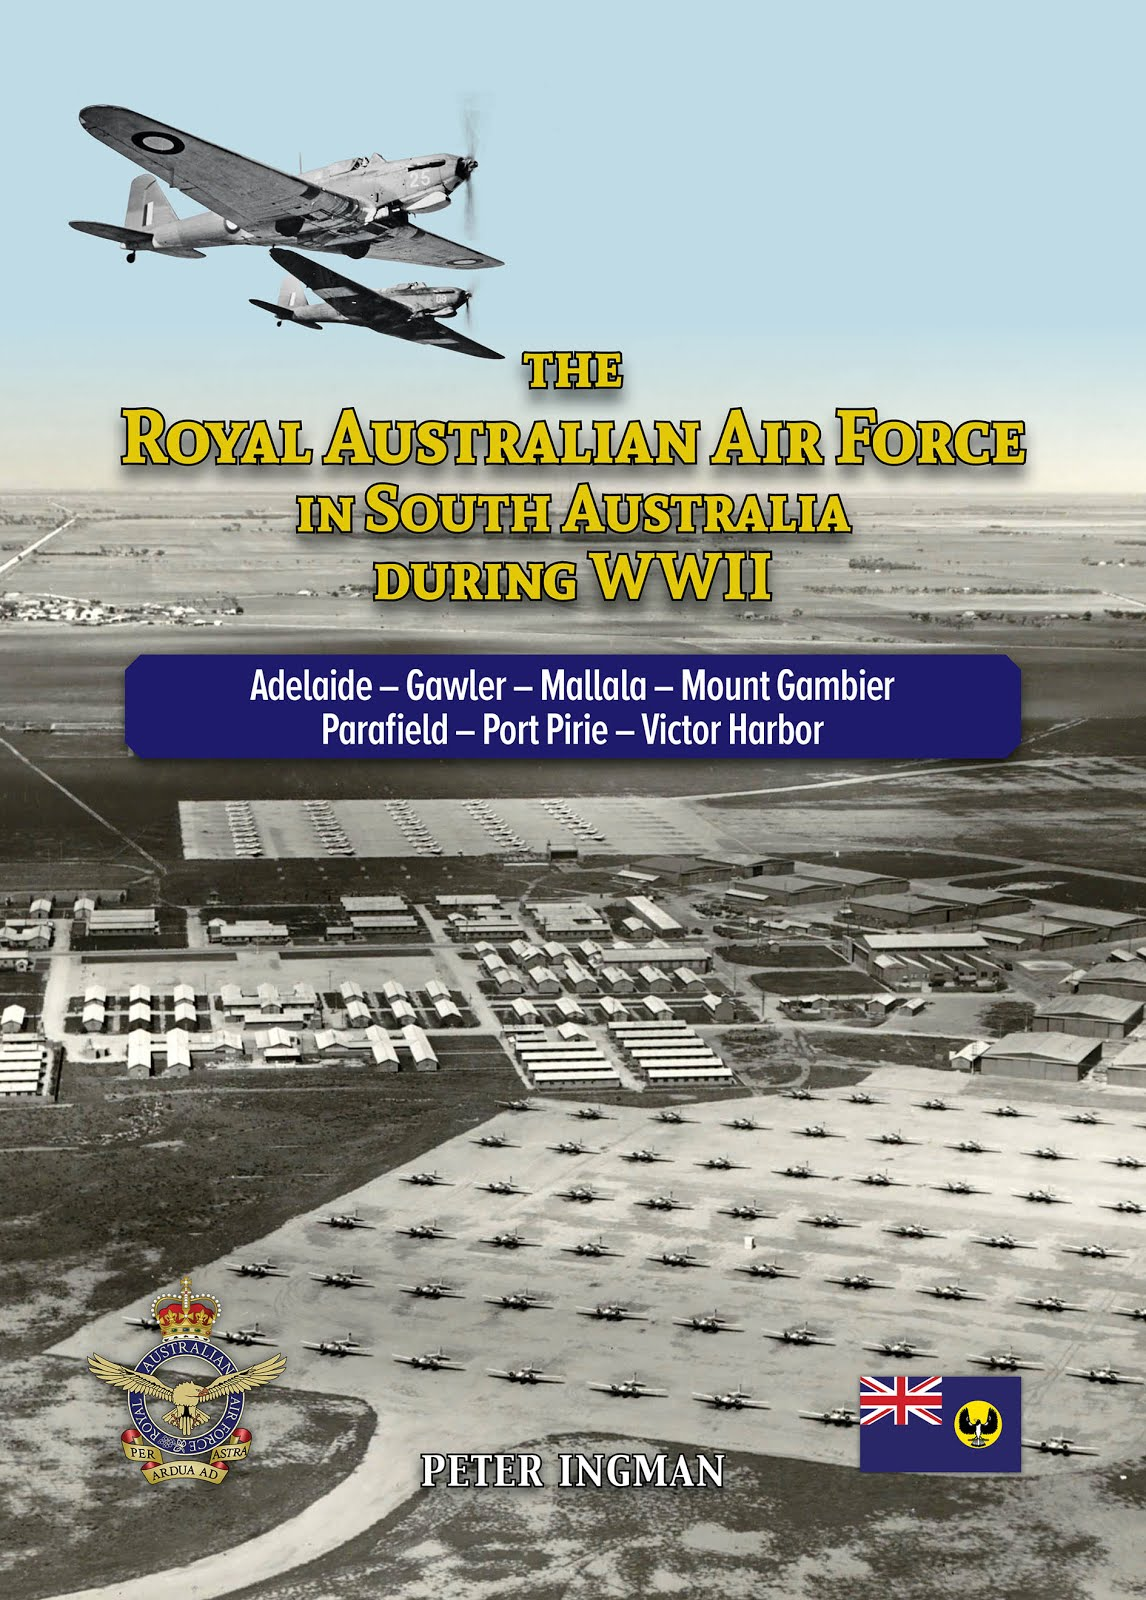 The RAAF in SA during WWII